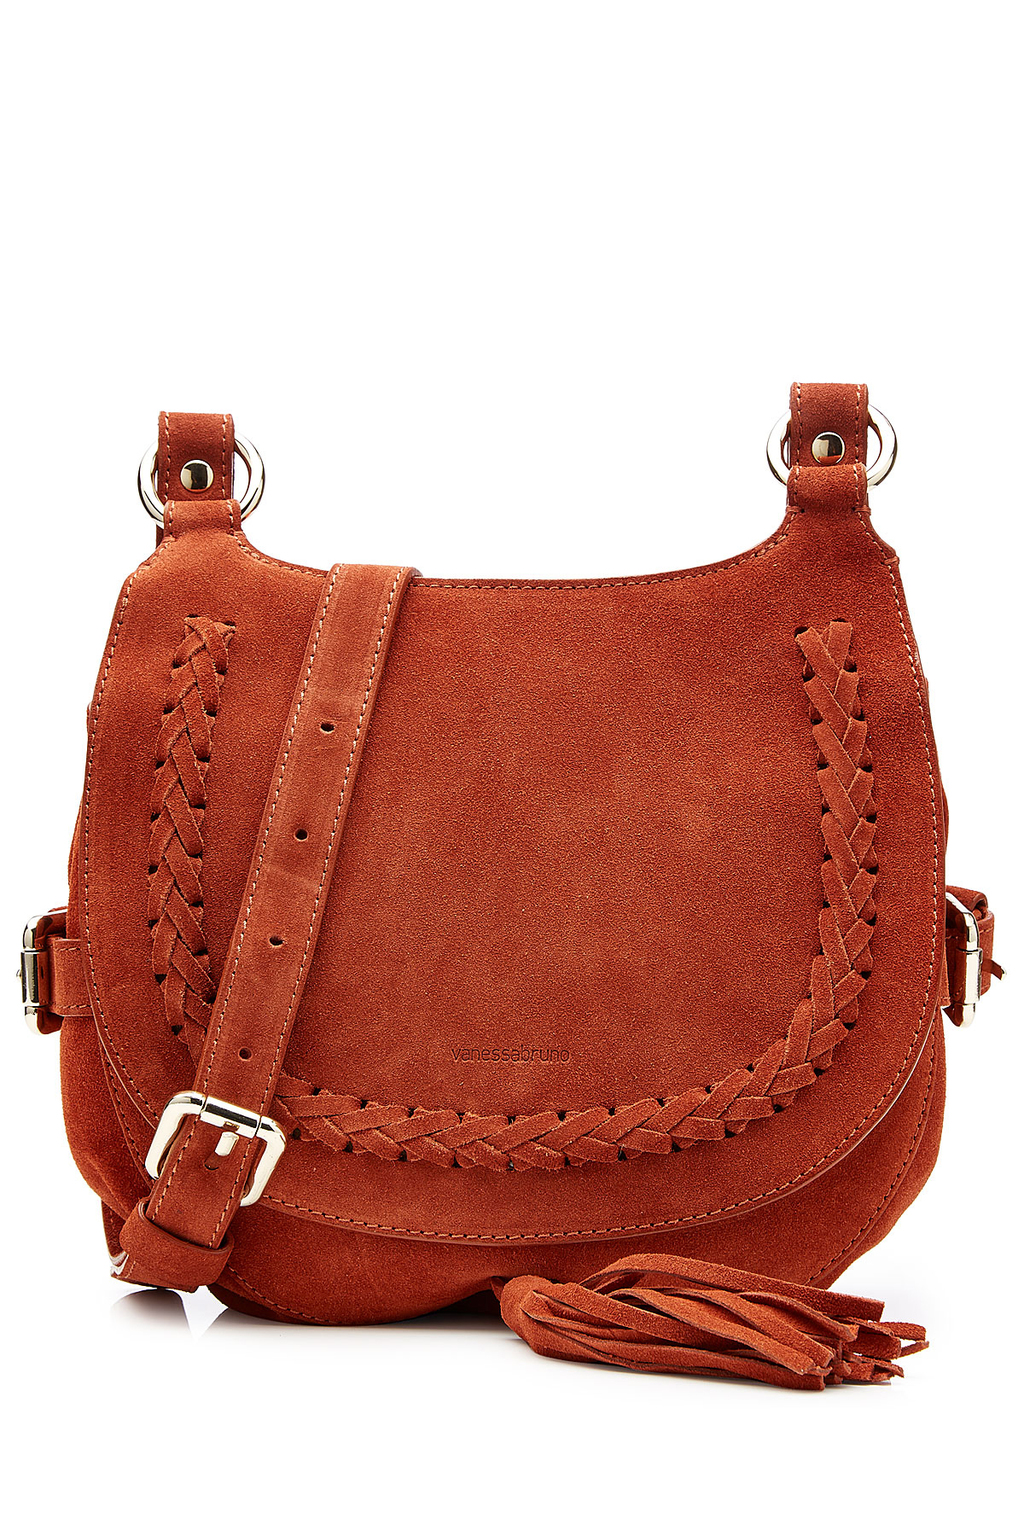 Suede Shoulder Bag Red - predominant colour: terracotta; occasions: casual, creative work; type of pattern: standard; style: saddle; length: across body/long; size: standard; material: suede; embellishment: tassels; pattern: plain; finish: plain; season: a/w 2016